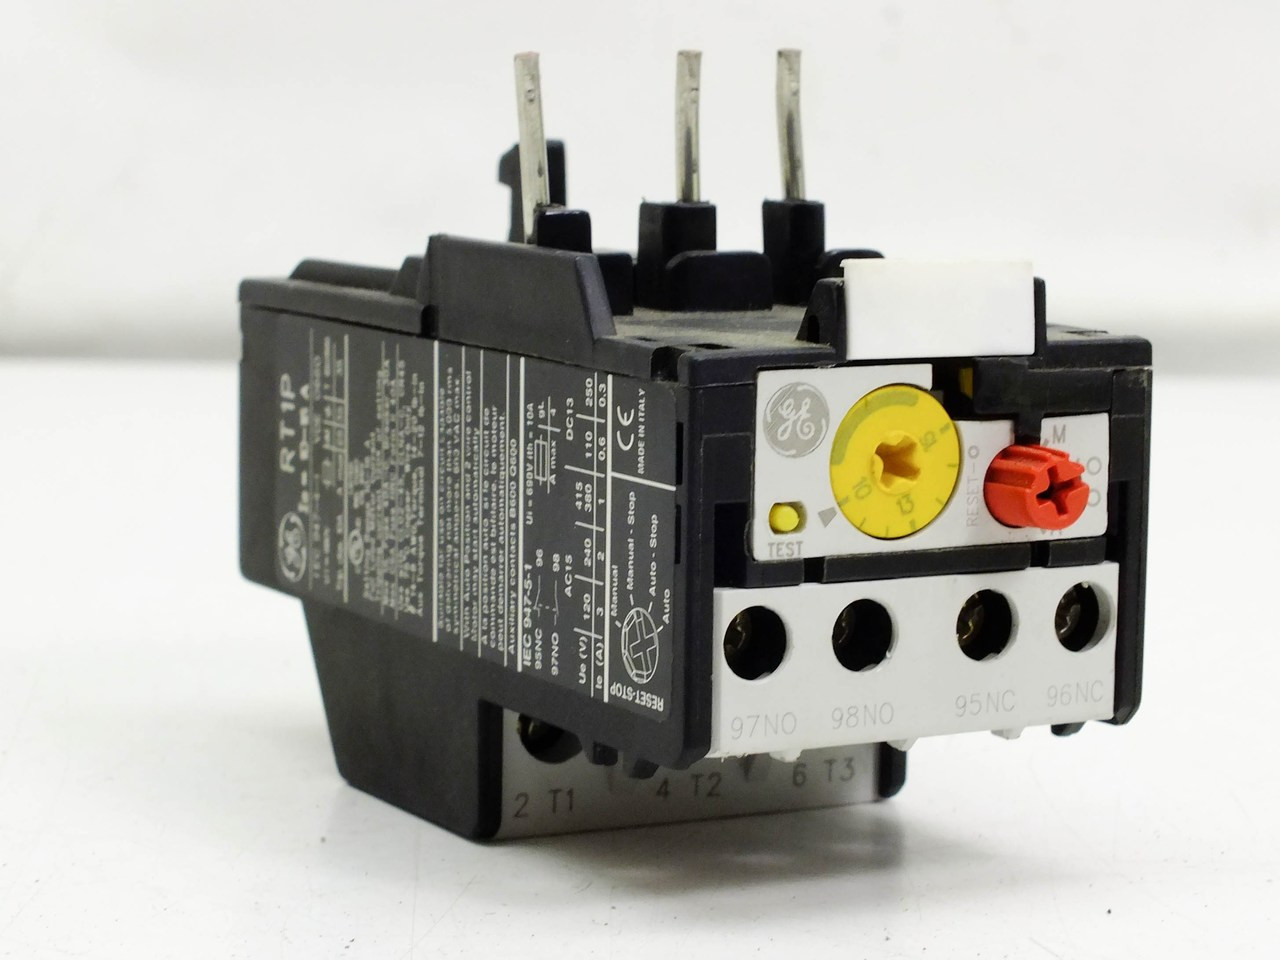 ge rt1p overload relay definite purpose control full voltage contactors 10a 1.40__24555.1490055242?c=2 ge rt1p overload relay definite purpose control full voltage furnas definite purpose control wiring diagram at cos-gaming.co